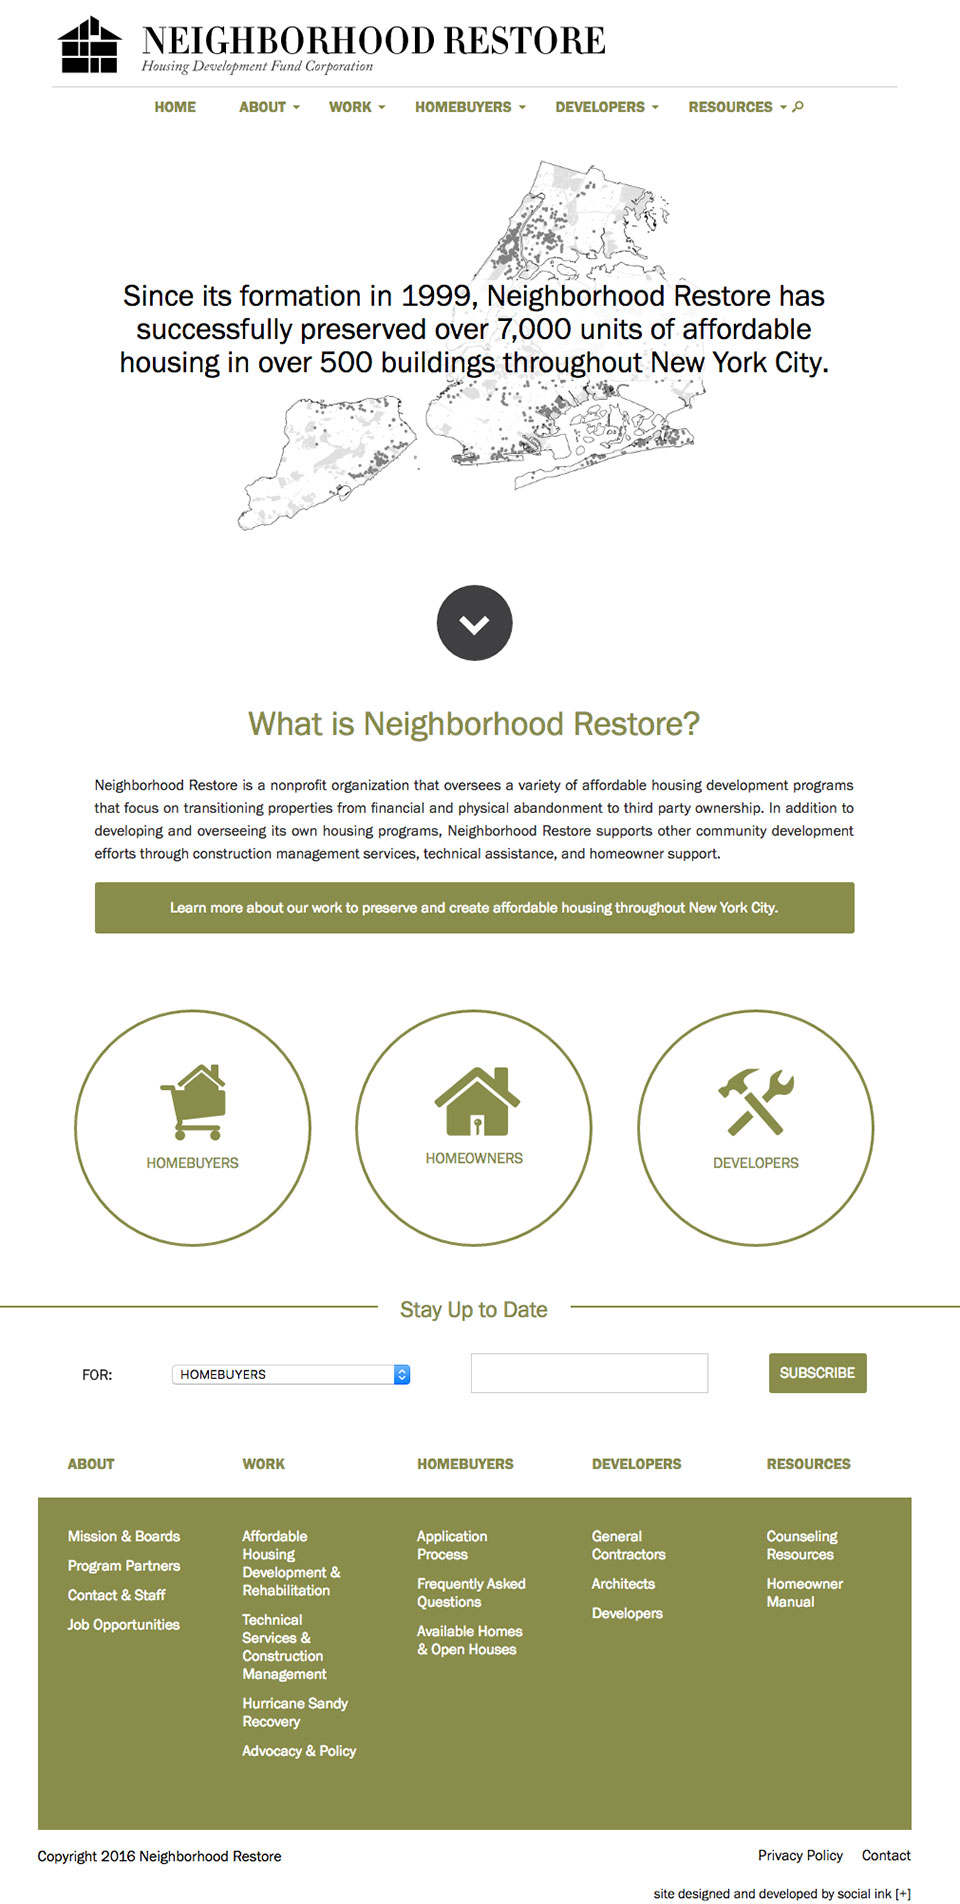 Neighborhood Restore HDFC: Neighborhood Restore Full Homepage